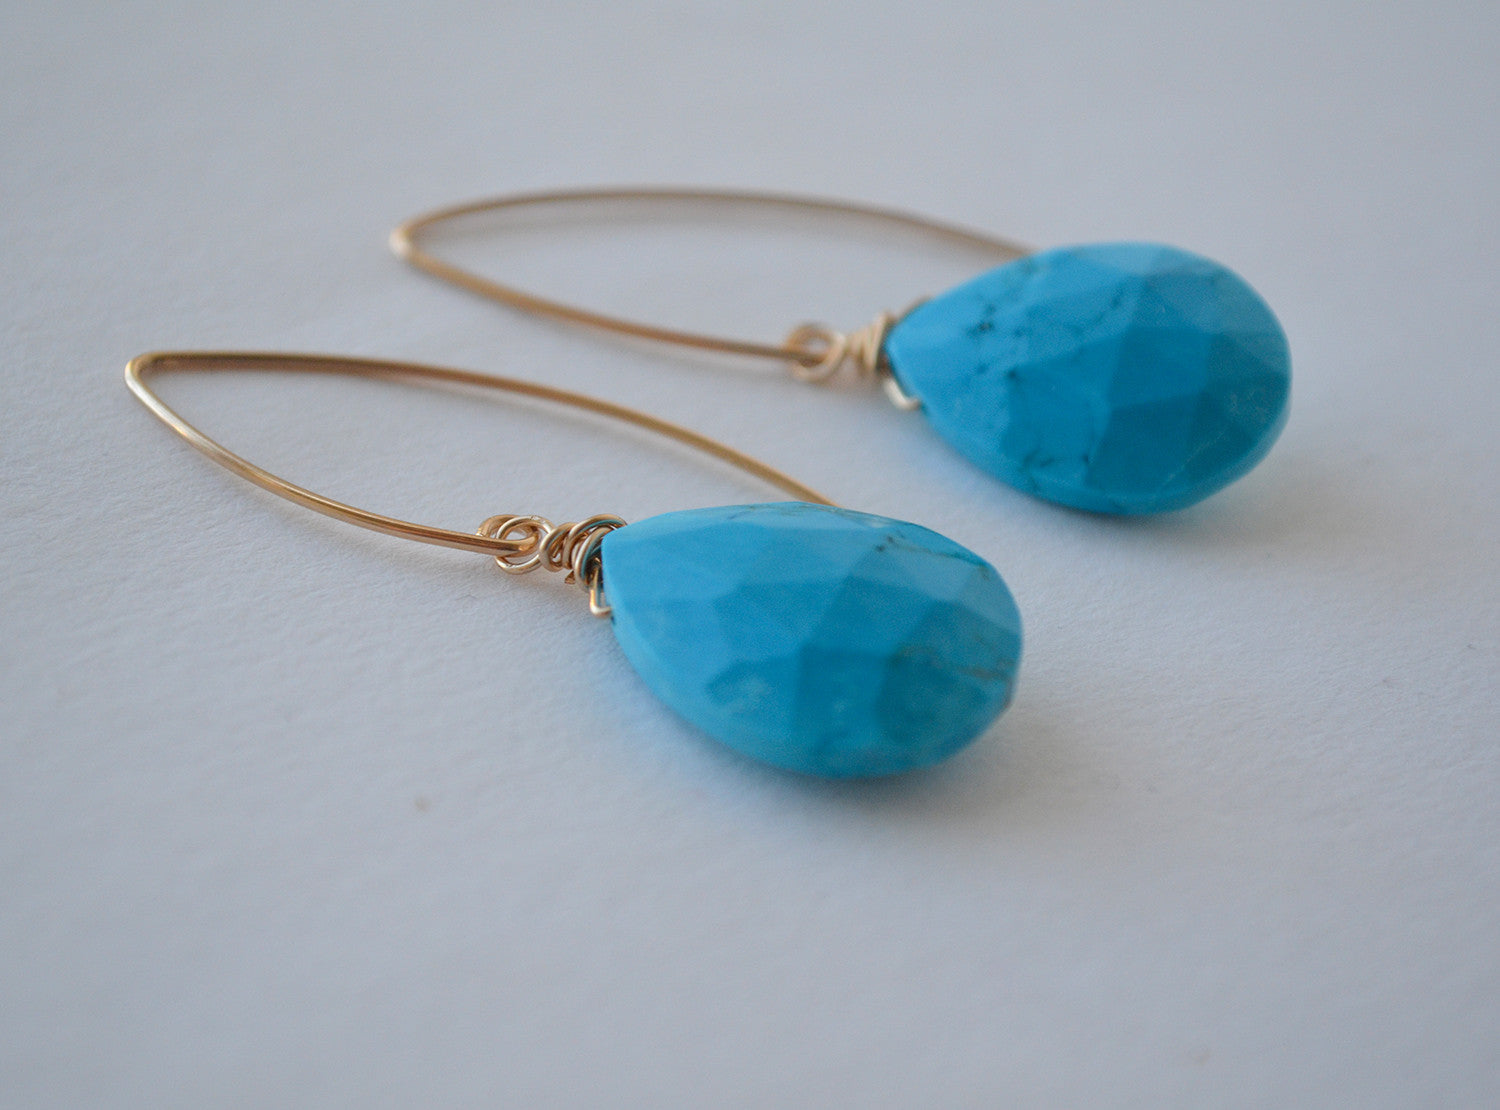 Almond Earrings - Turquoise